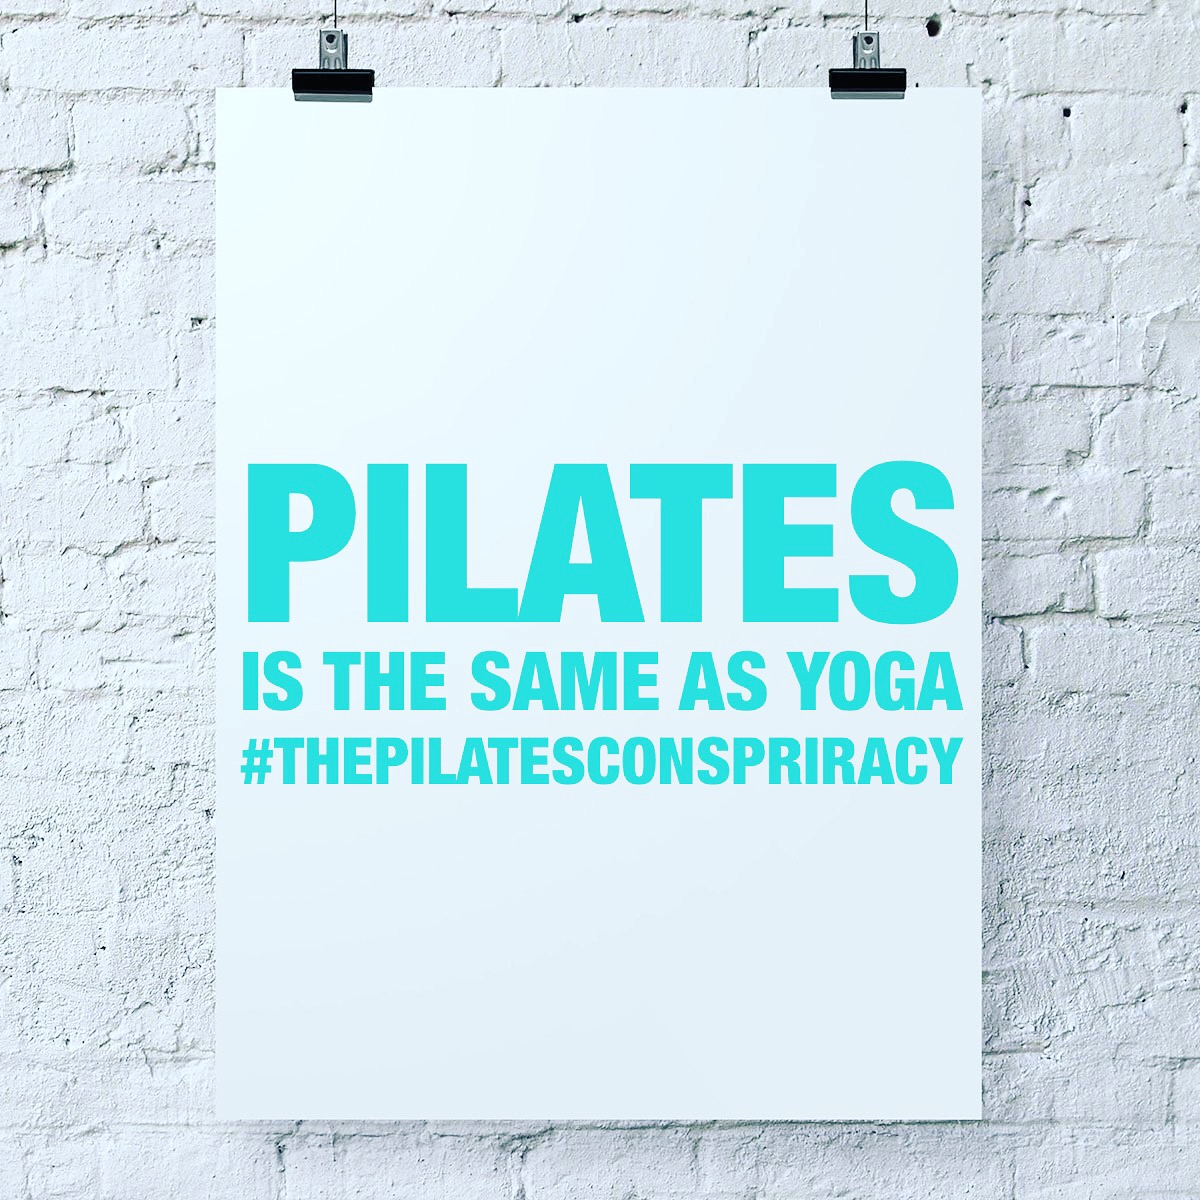 Pilates is the same as Yoga